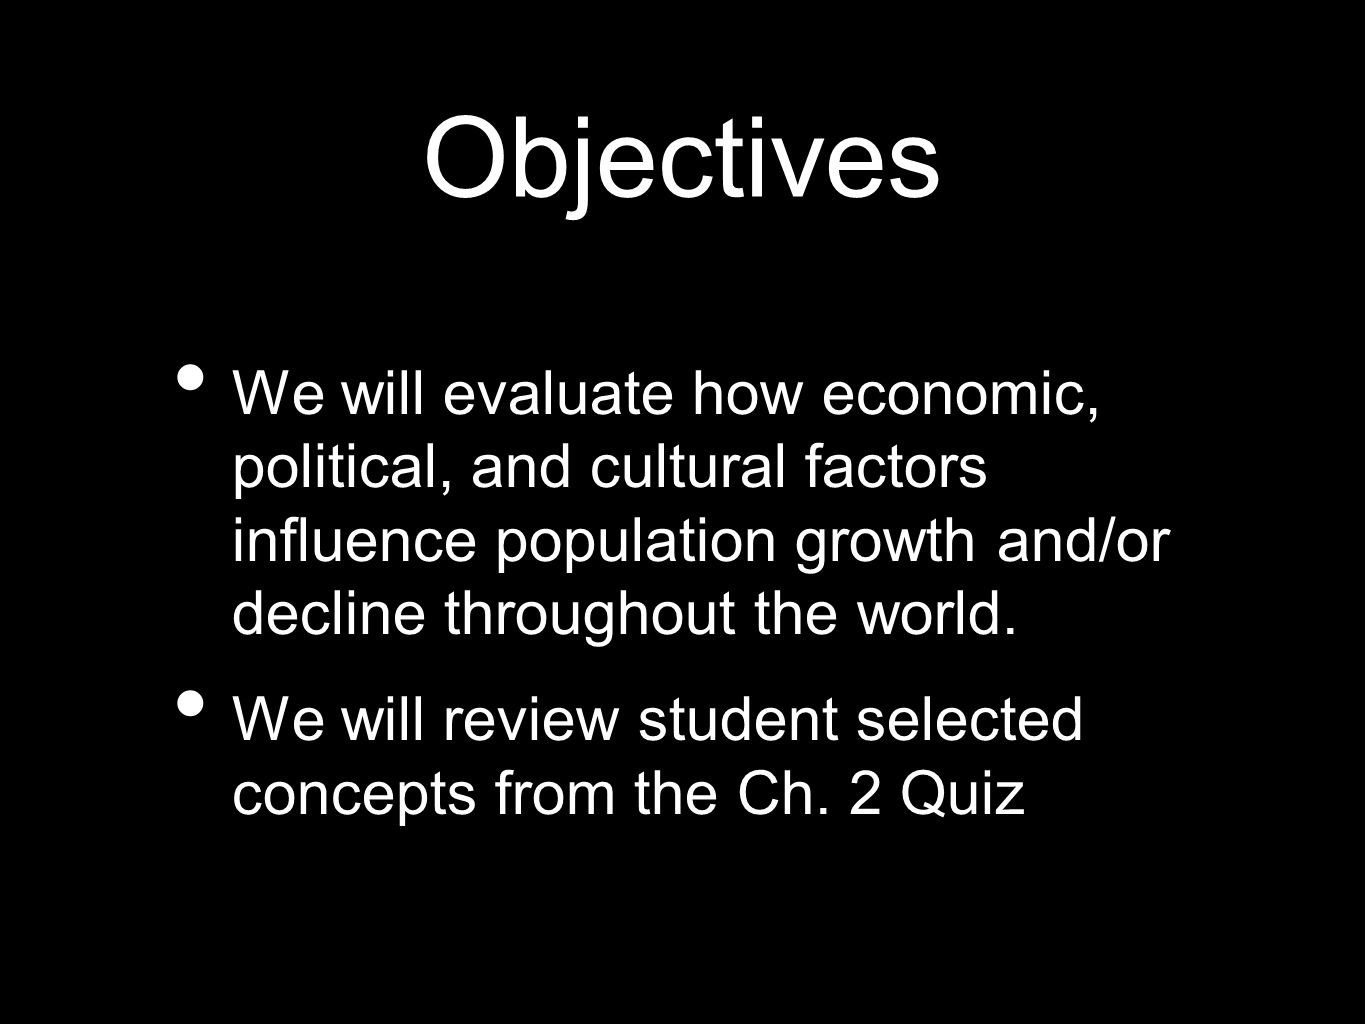 Objectives We will evaluate how economic, political, and cultural factors influence population growth and/or decline throughout the world.